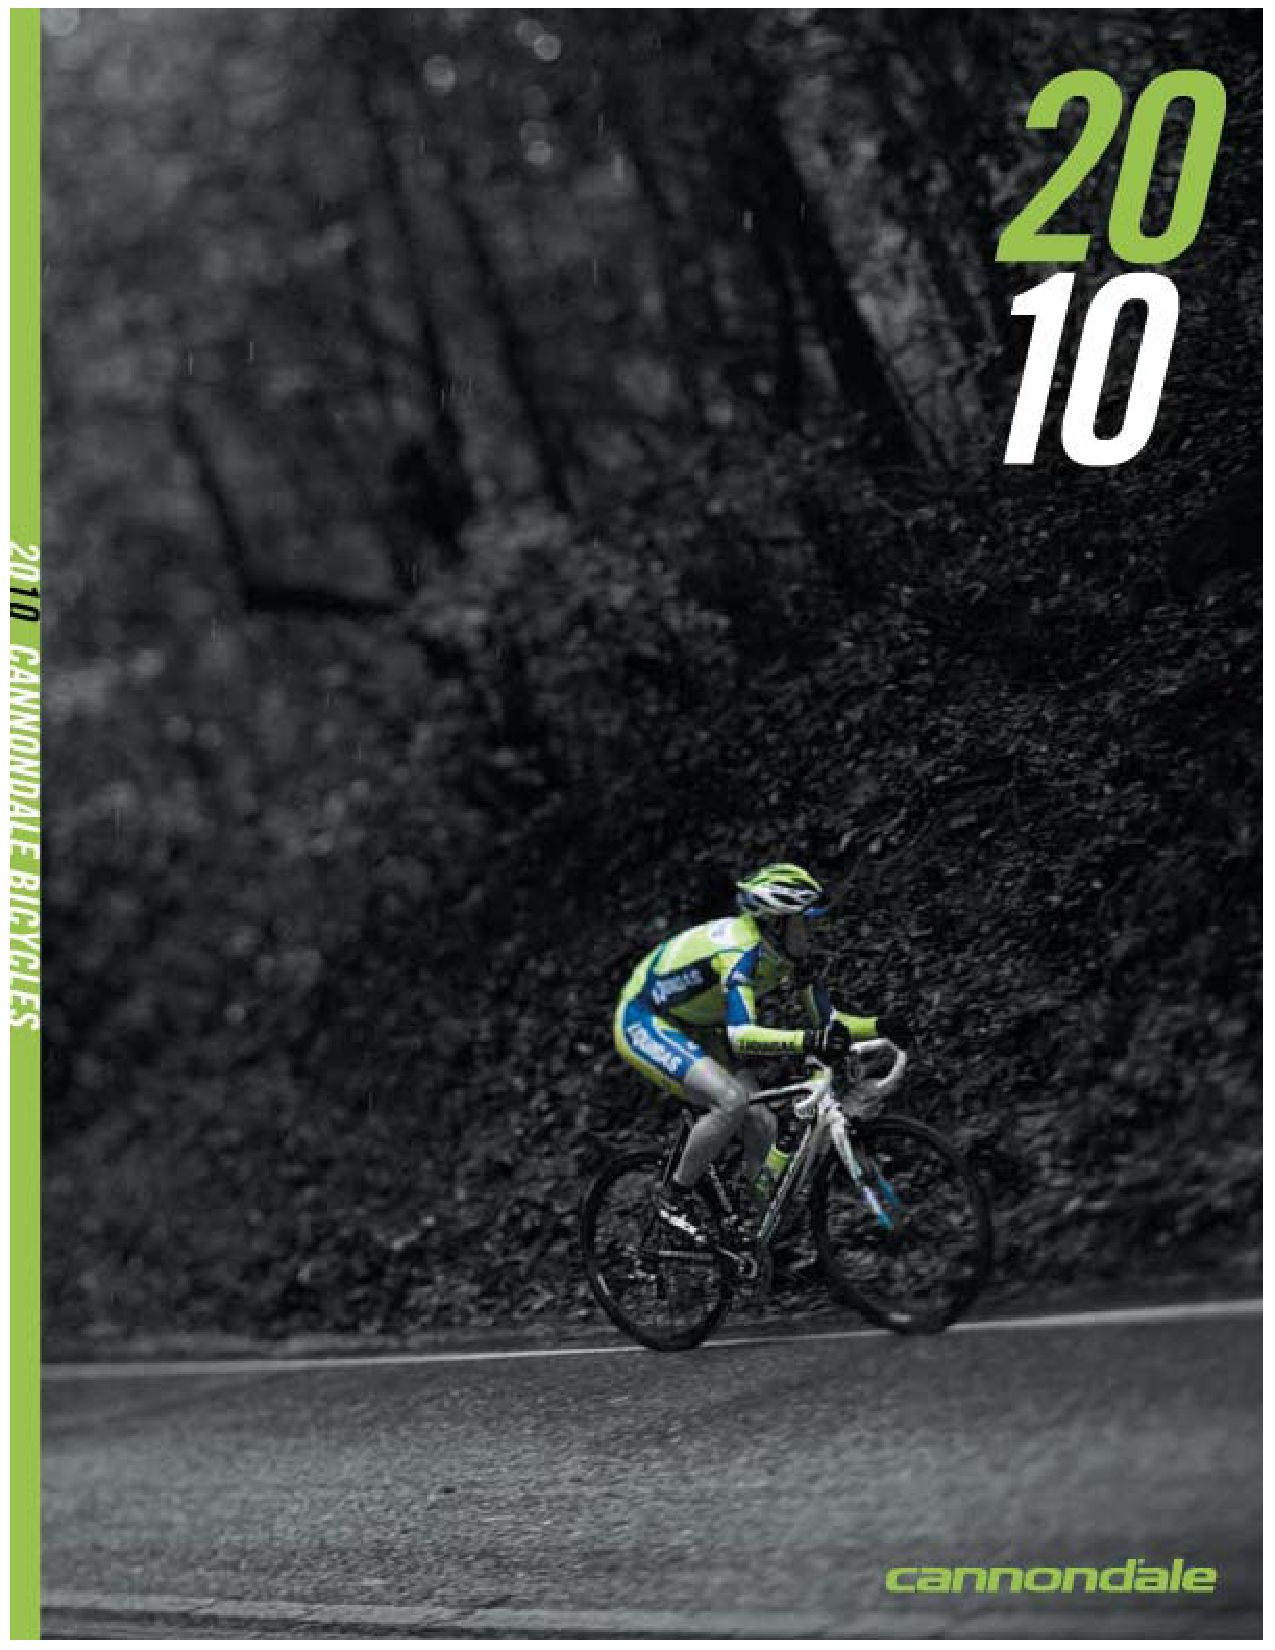 211ae31328a 2010 Cannondale Bicycles by CSG Australia - issuu